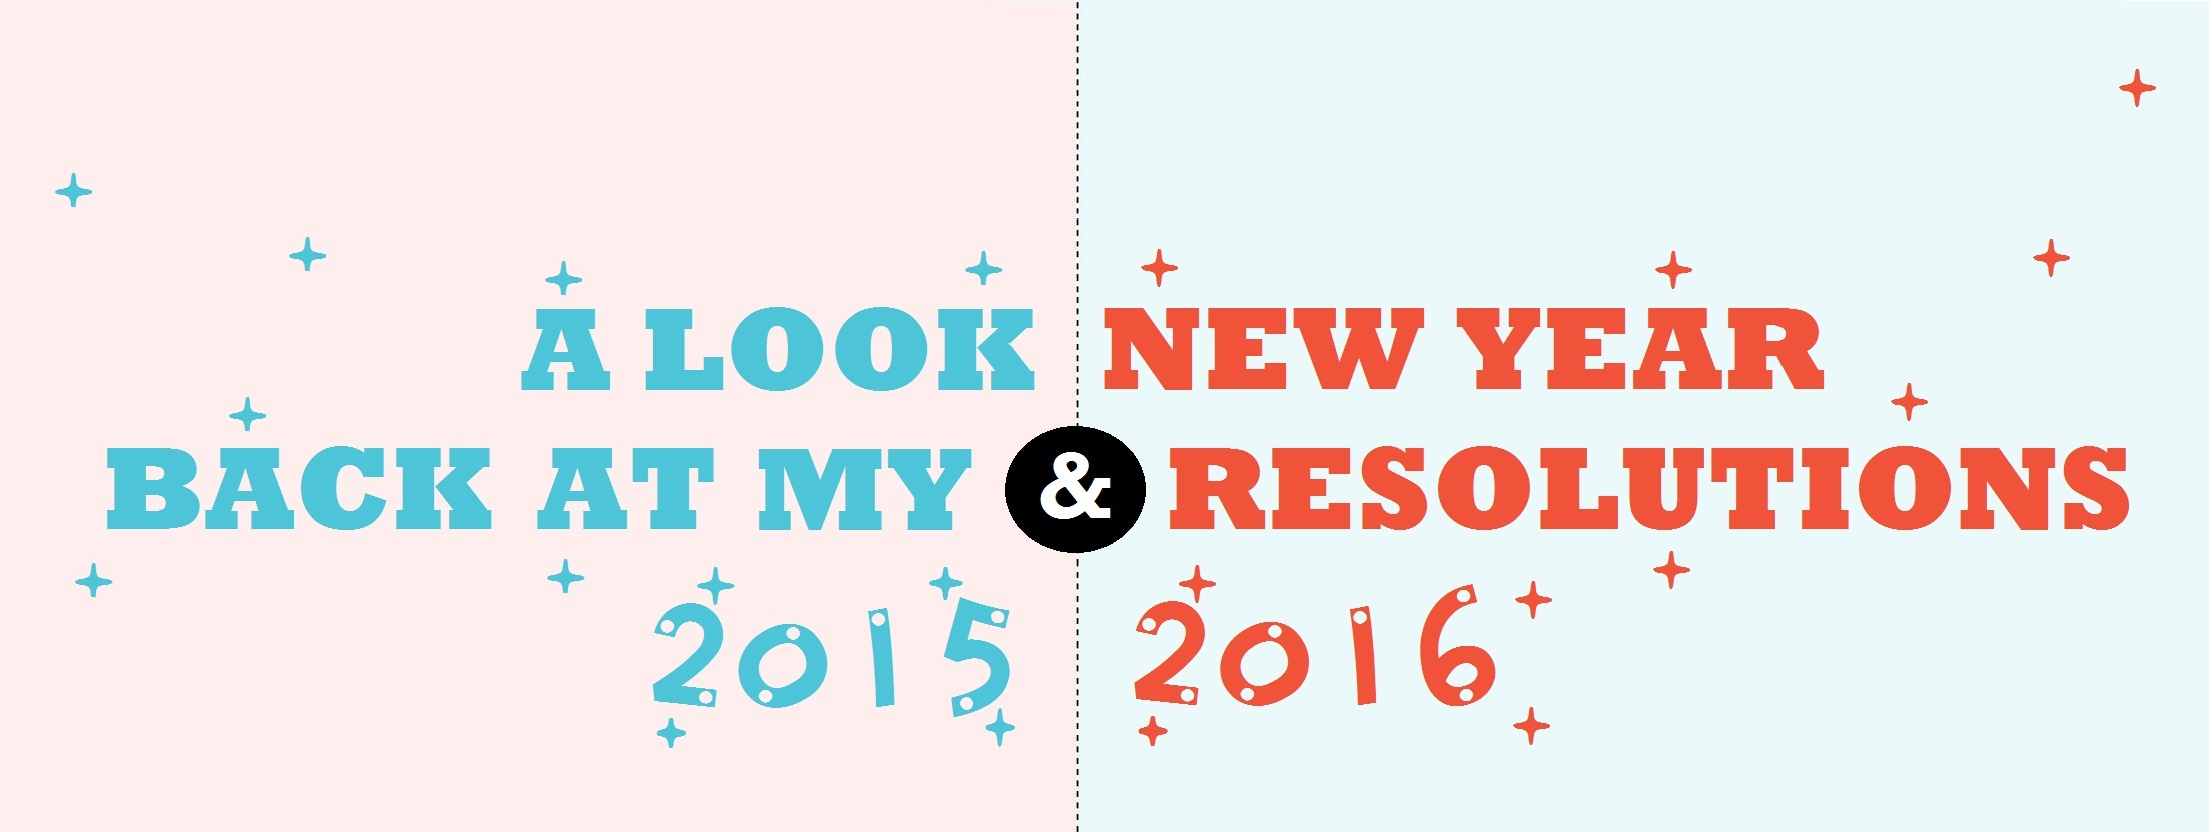 A Look Back at 2015 and New Year Resolutions for 2016!